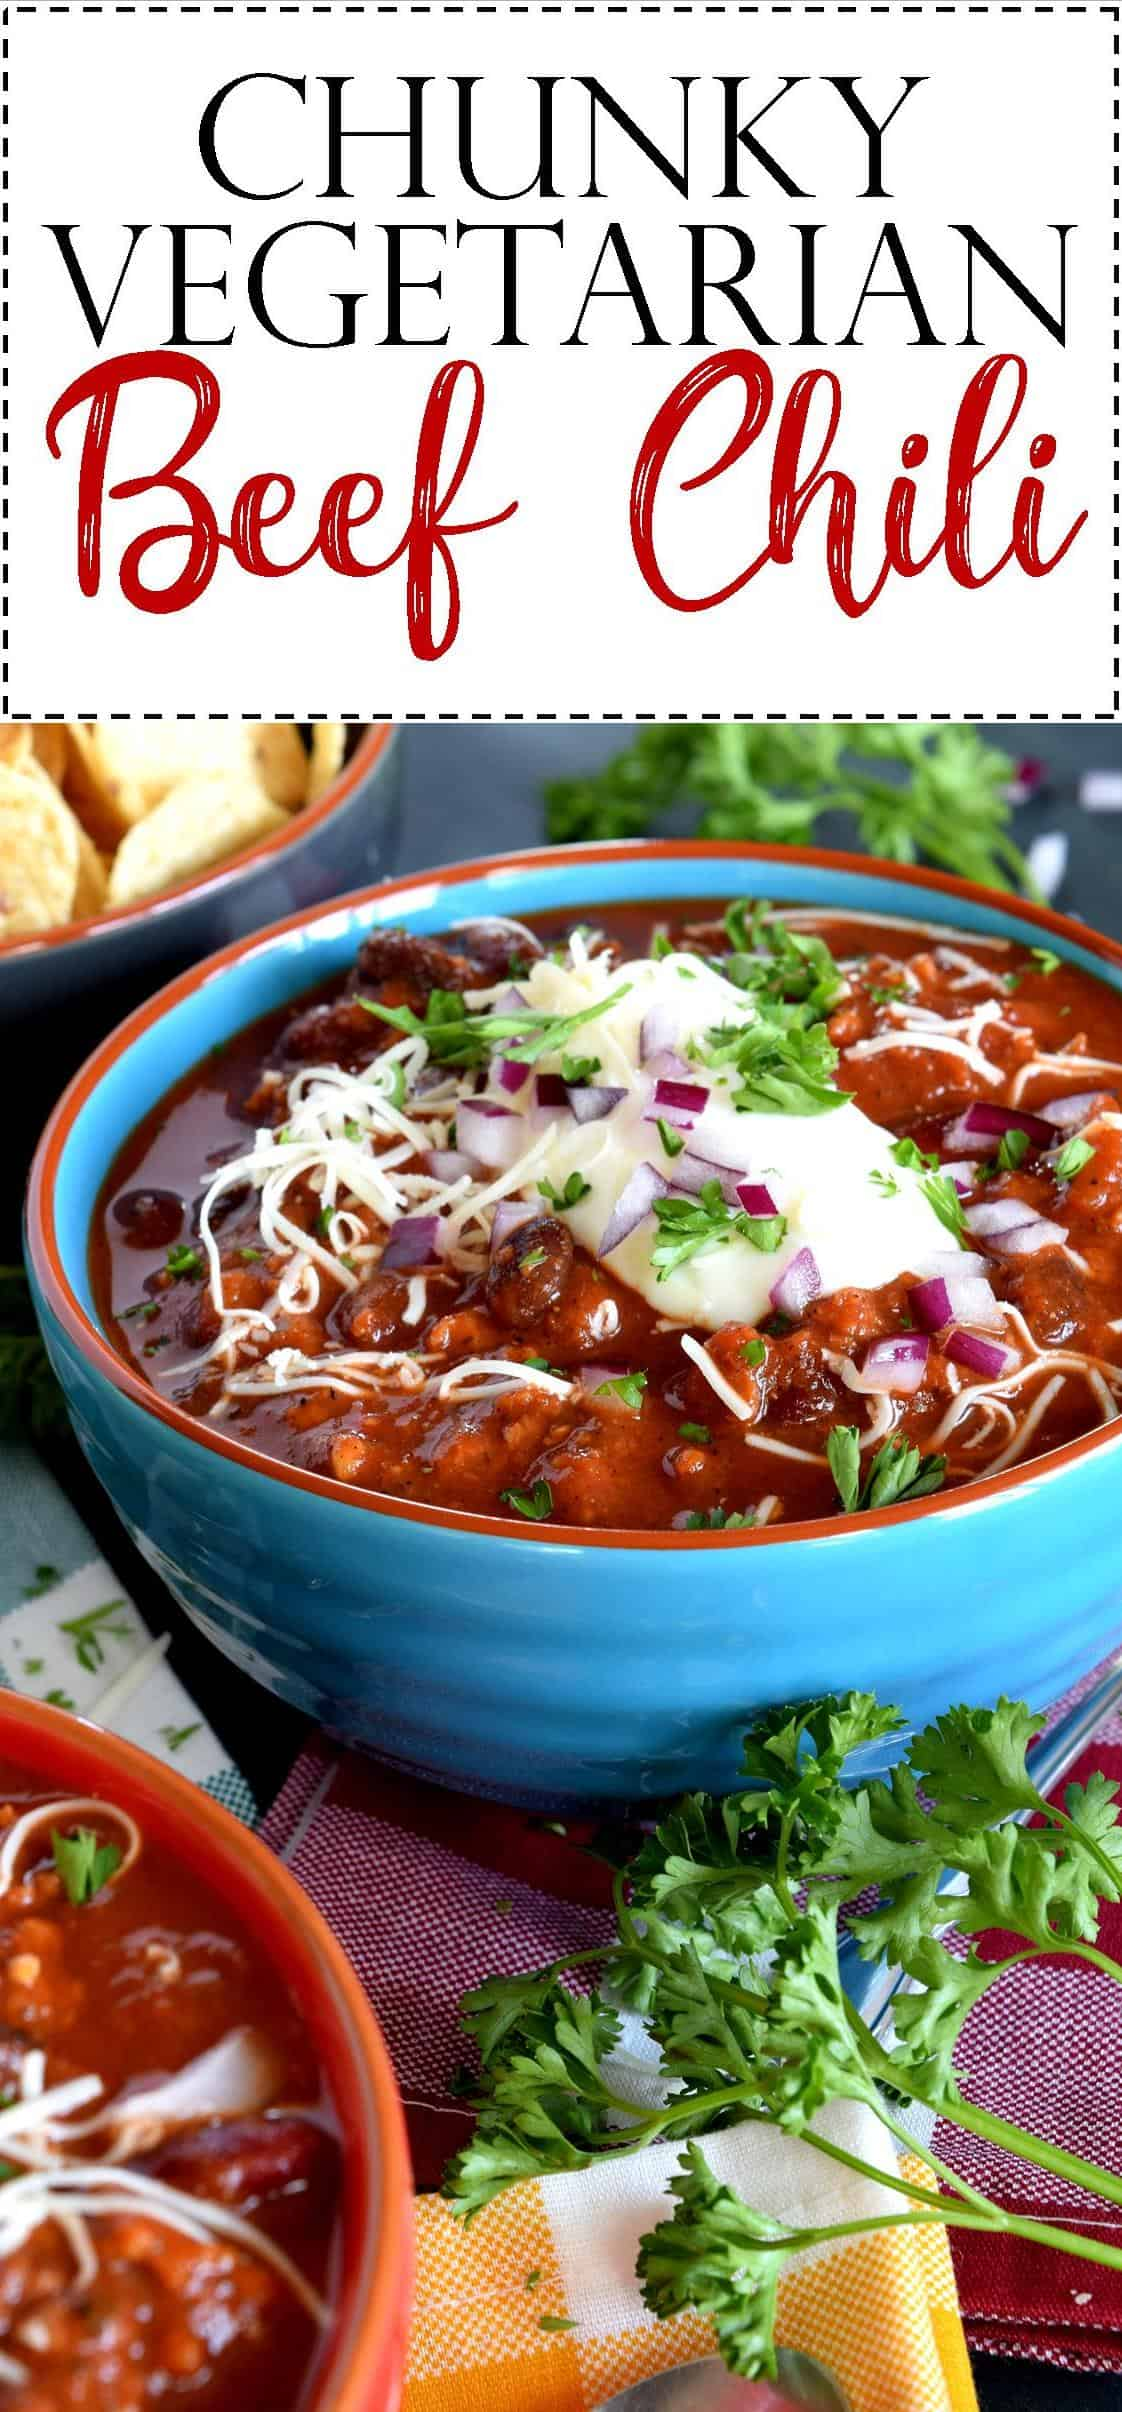 Chunky vegetarian beef chili lord byrons kitchen chunky vegetarian beef chili is the ultimate in vegetarian chili options loaded with kidney and black beans big pieces of tomato and textured vegetable forumfinder Image collections